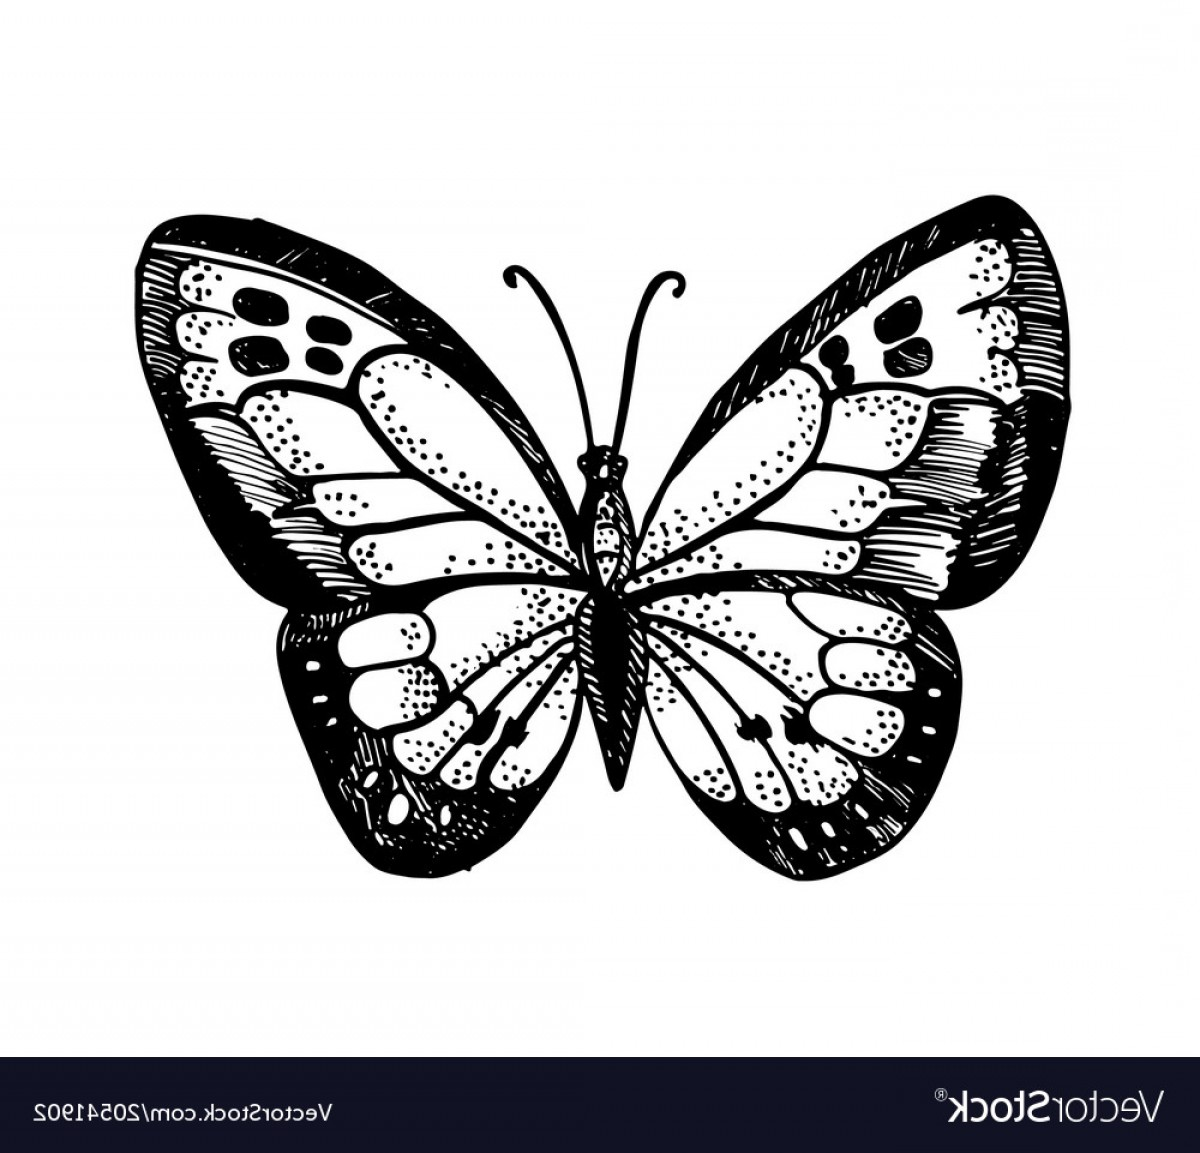 Butter Fly And Flower Vector Black And White: Ornamented Abstract Butterfly And Flower Vector